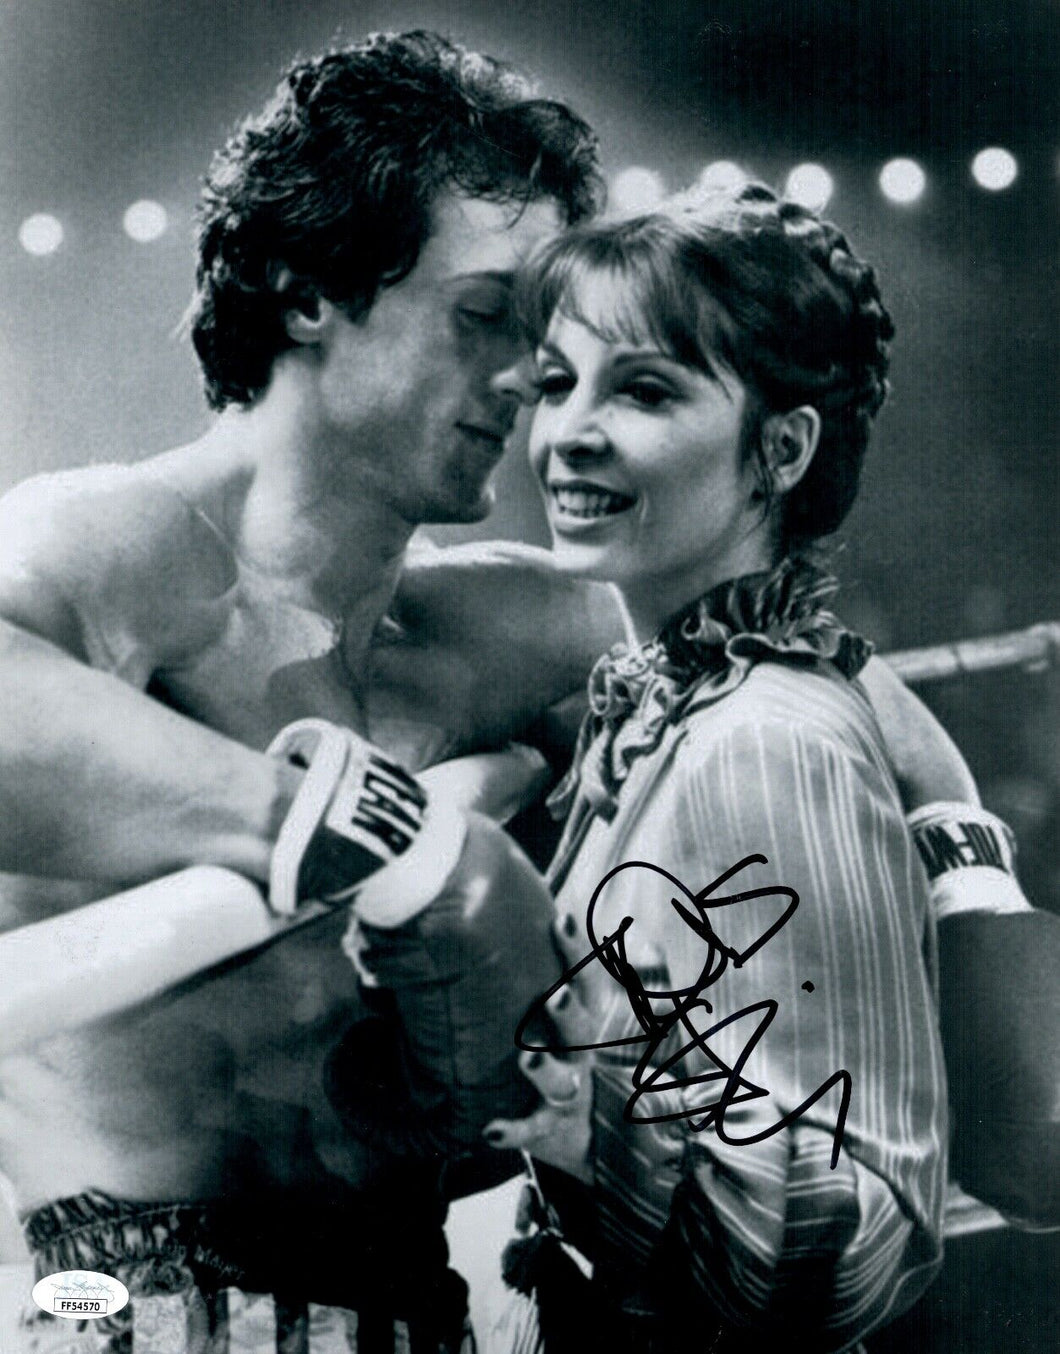 TALIA SHIRE Signed 11x14 Photo ROCKY Autograph THE GODFATHER In Person JSA COA